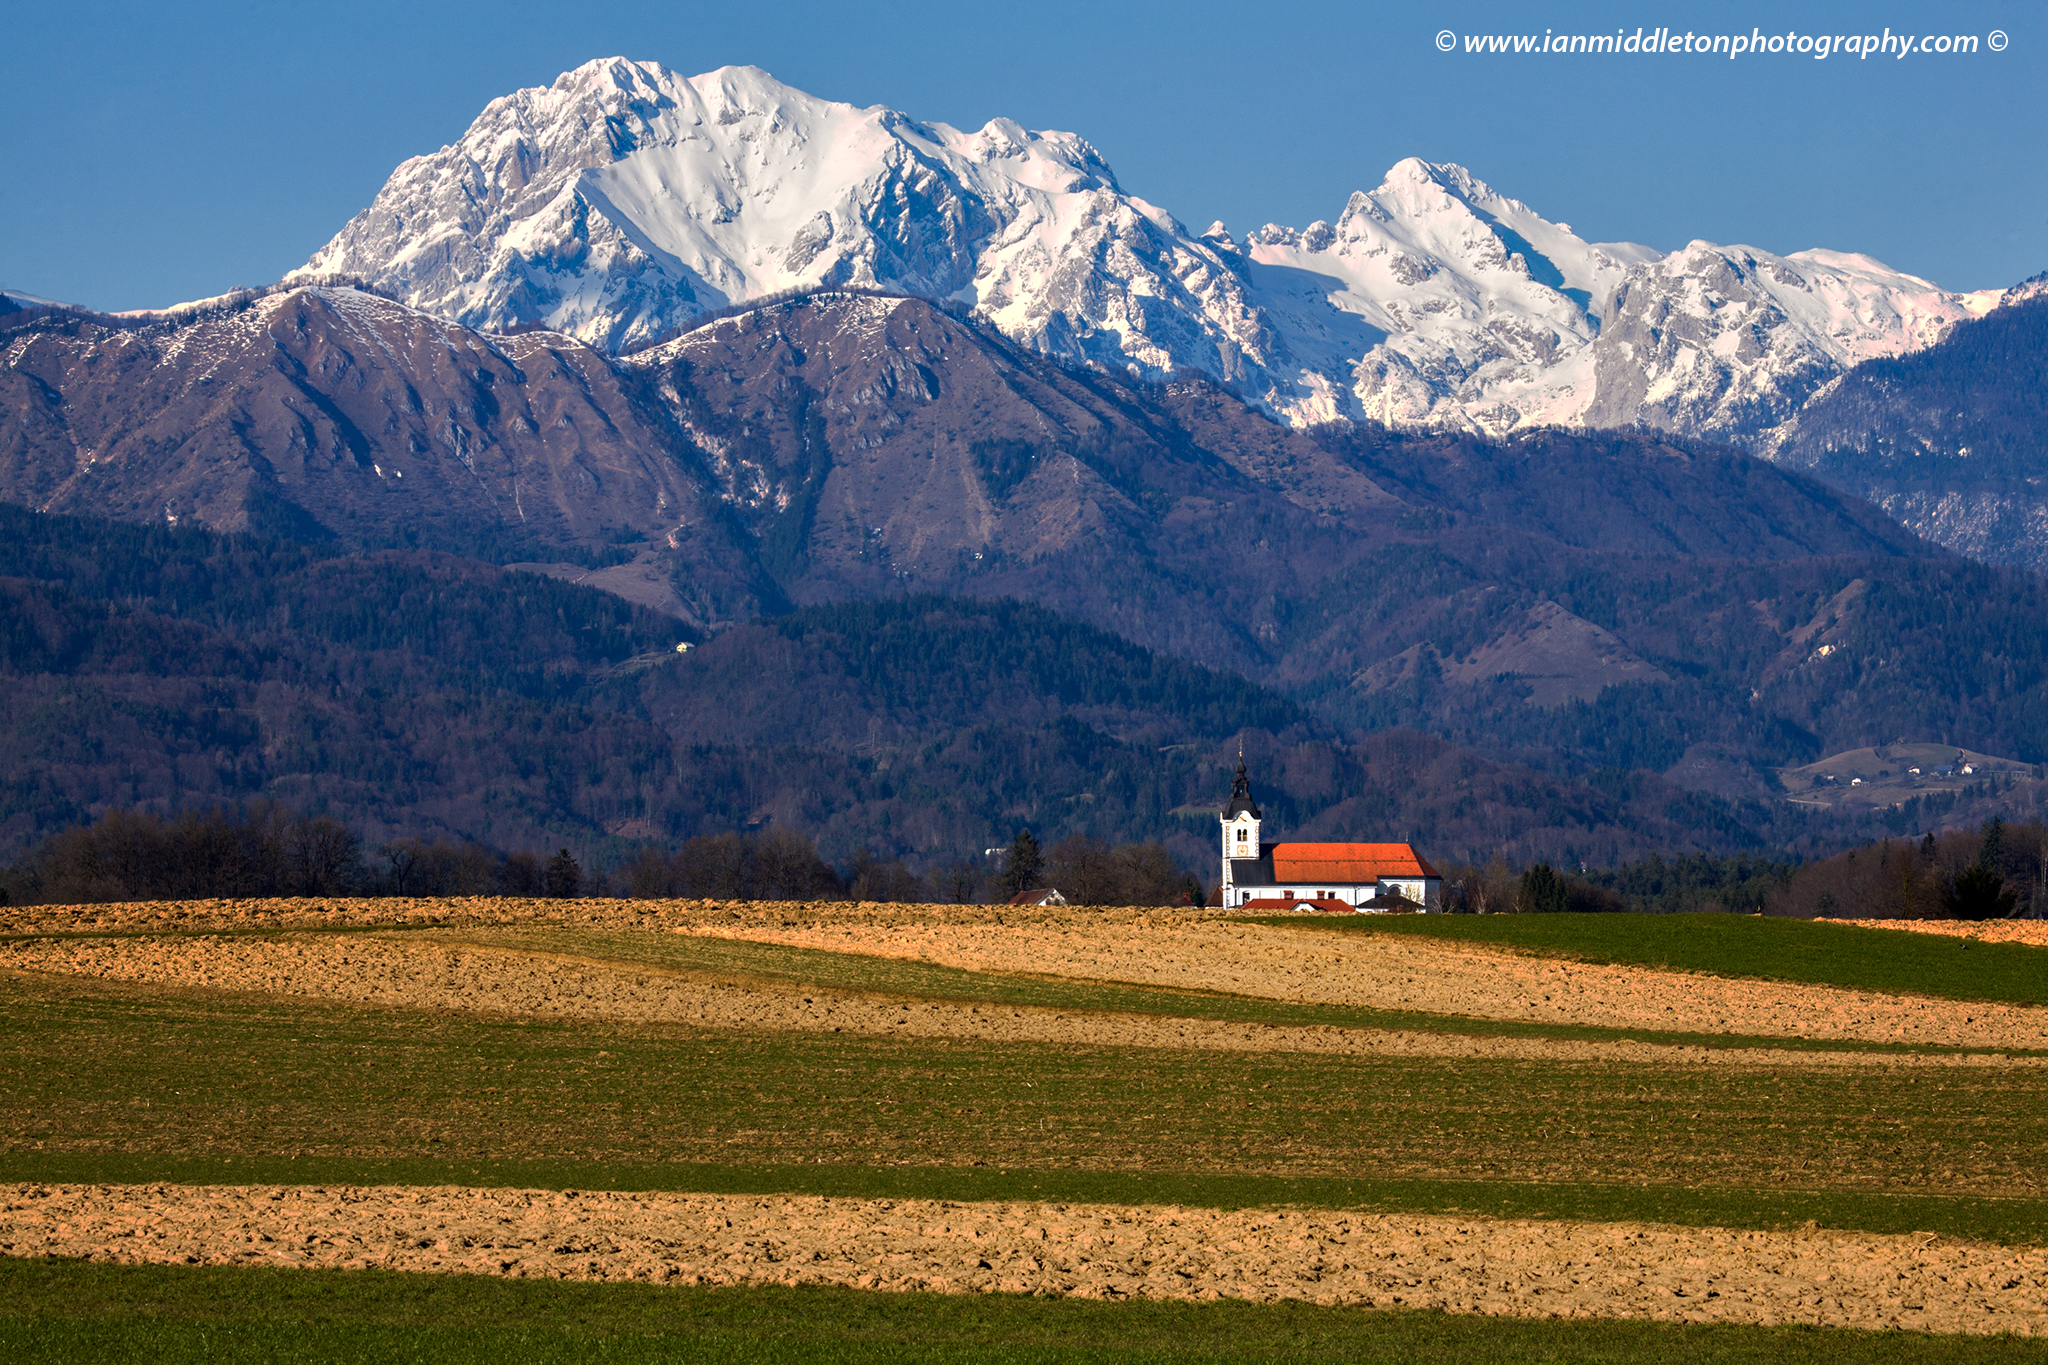 Mountaintops of the Kamnik Alps with the church of Saint Peter sitting in its shadow. This complex also contains a castle, a baroque church, a parsonage, a cemetery and a fairly large stable. The Alps have a fresh coating of snow after an abundance of snow this winter